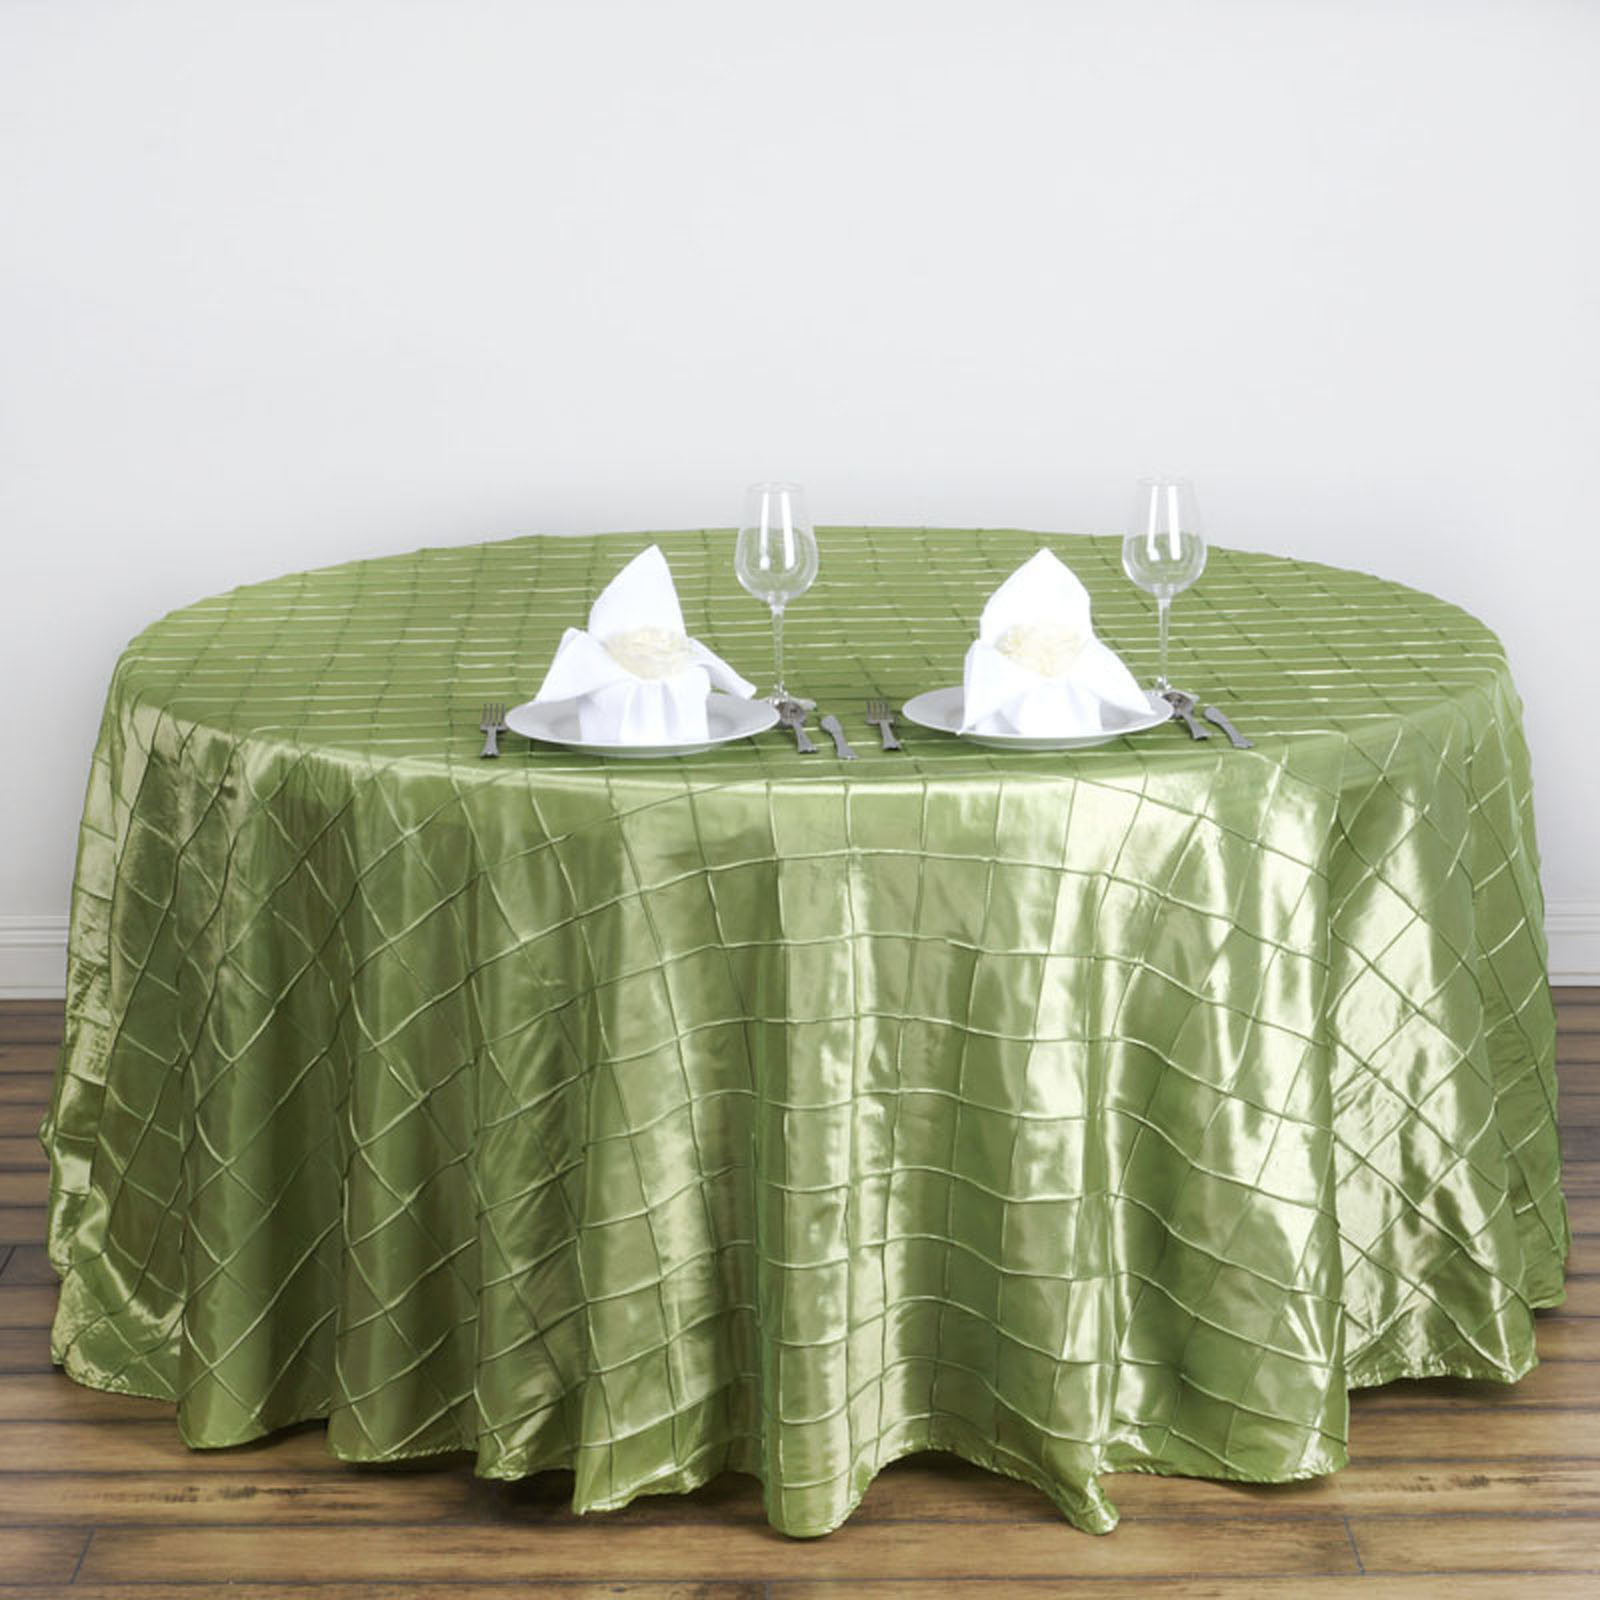 24 pcs wholesale lot pintuck 120 round tablecloths for 120 round table cloths